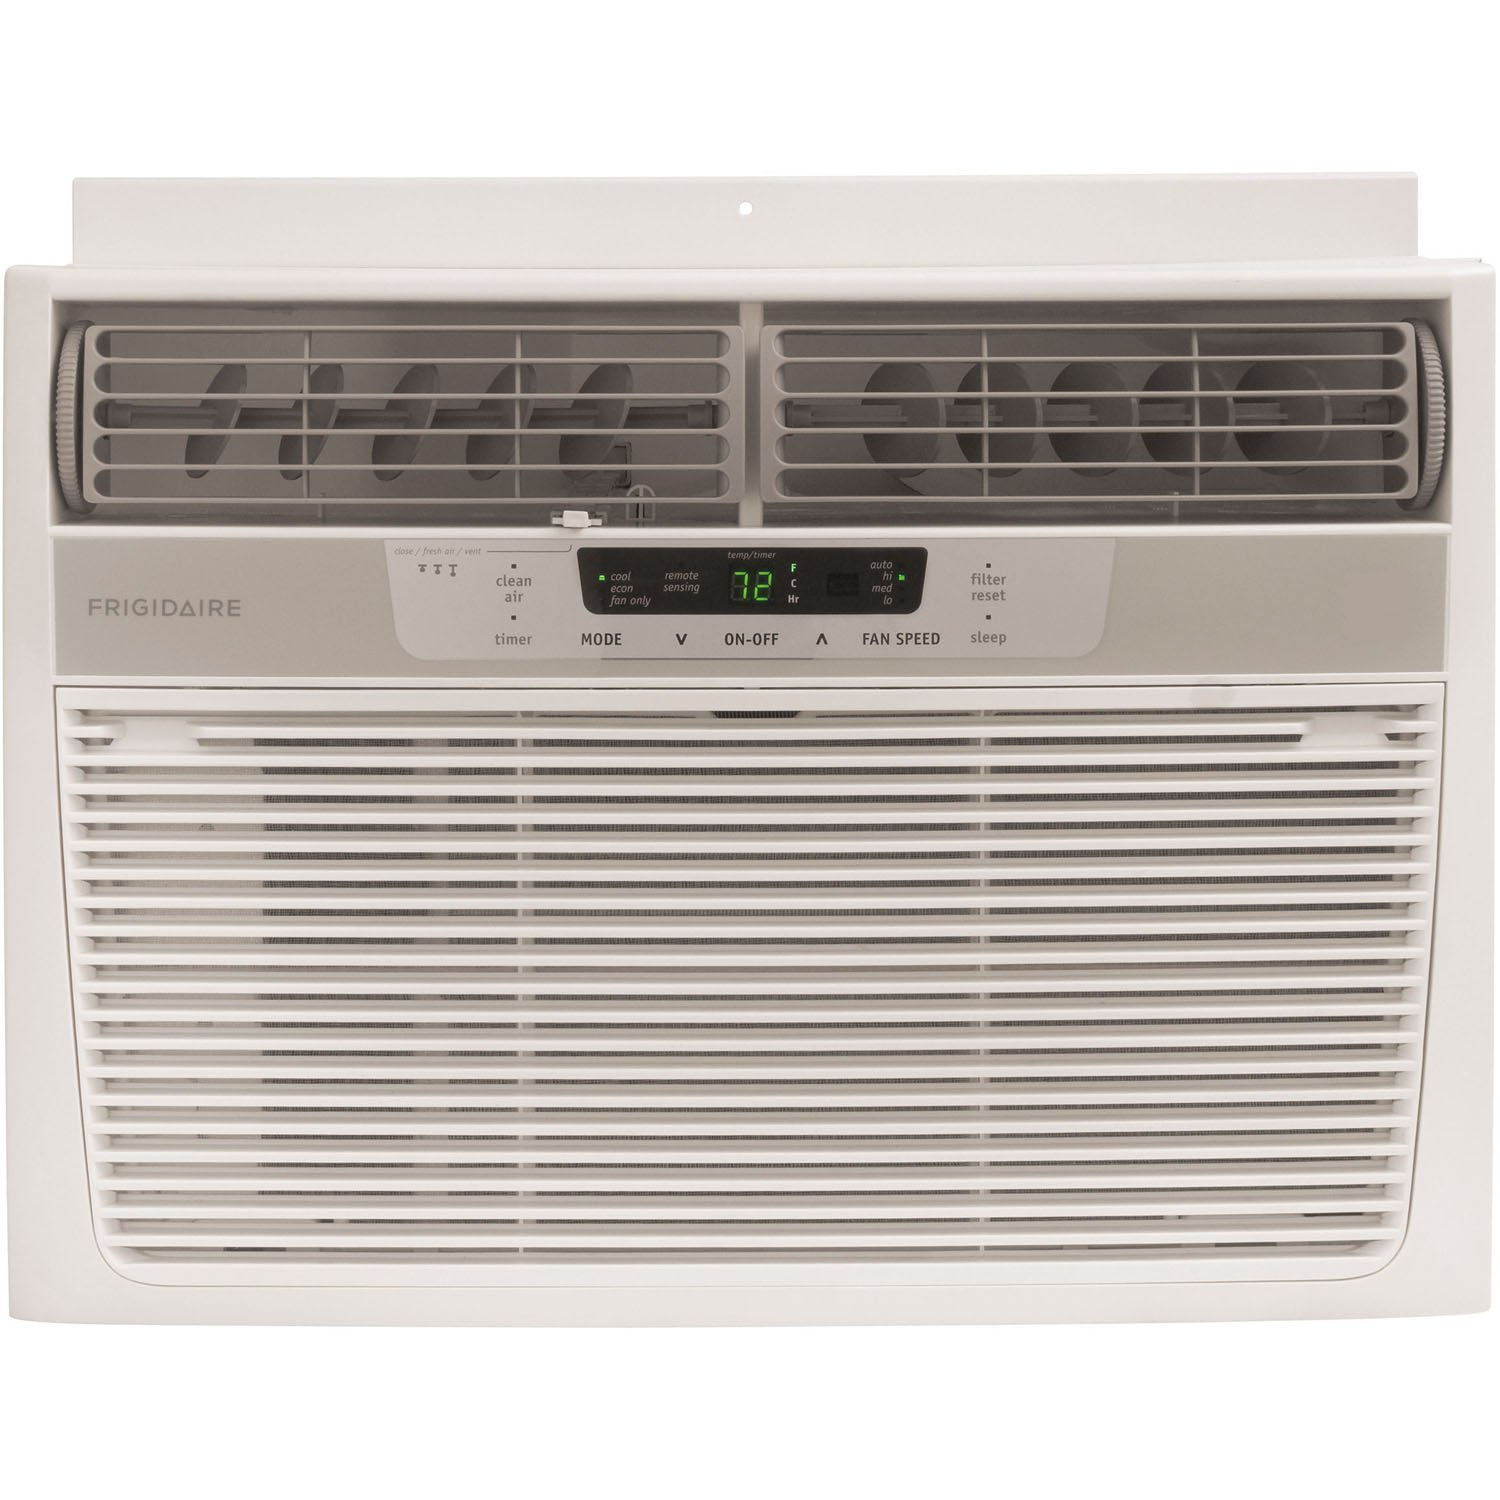 Top 10 Best Window Air Conditioners Reviews 2016-2017 on Flipboard